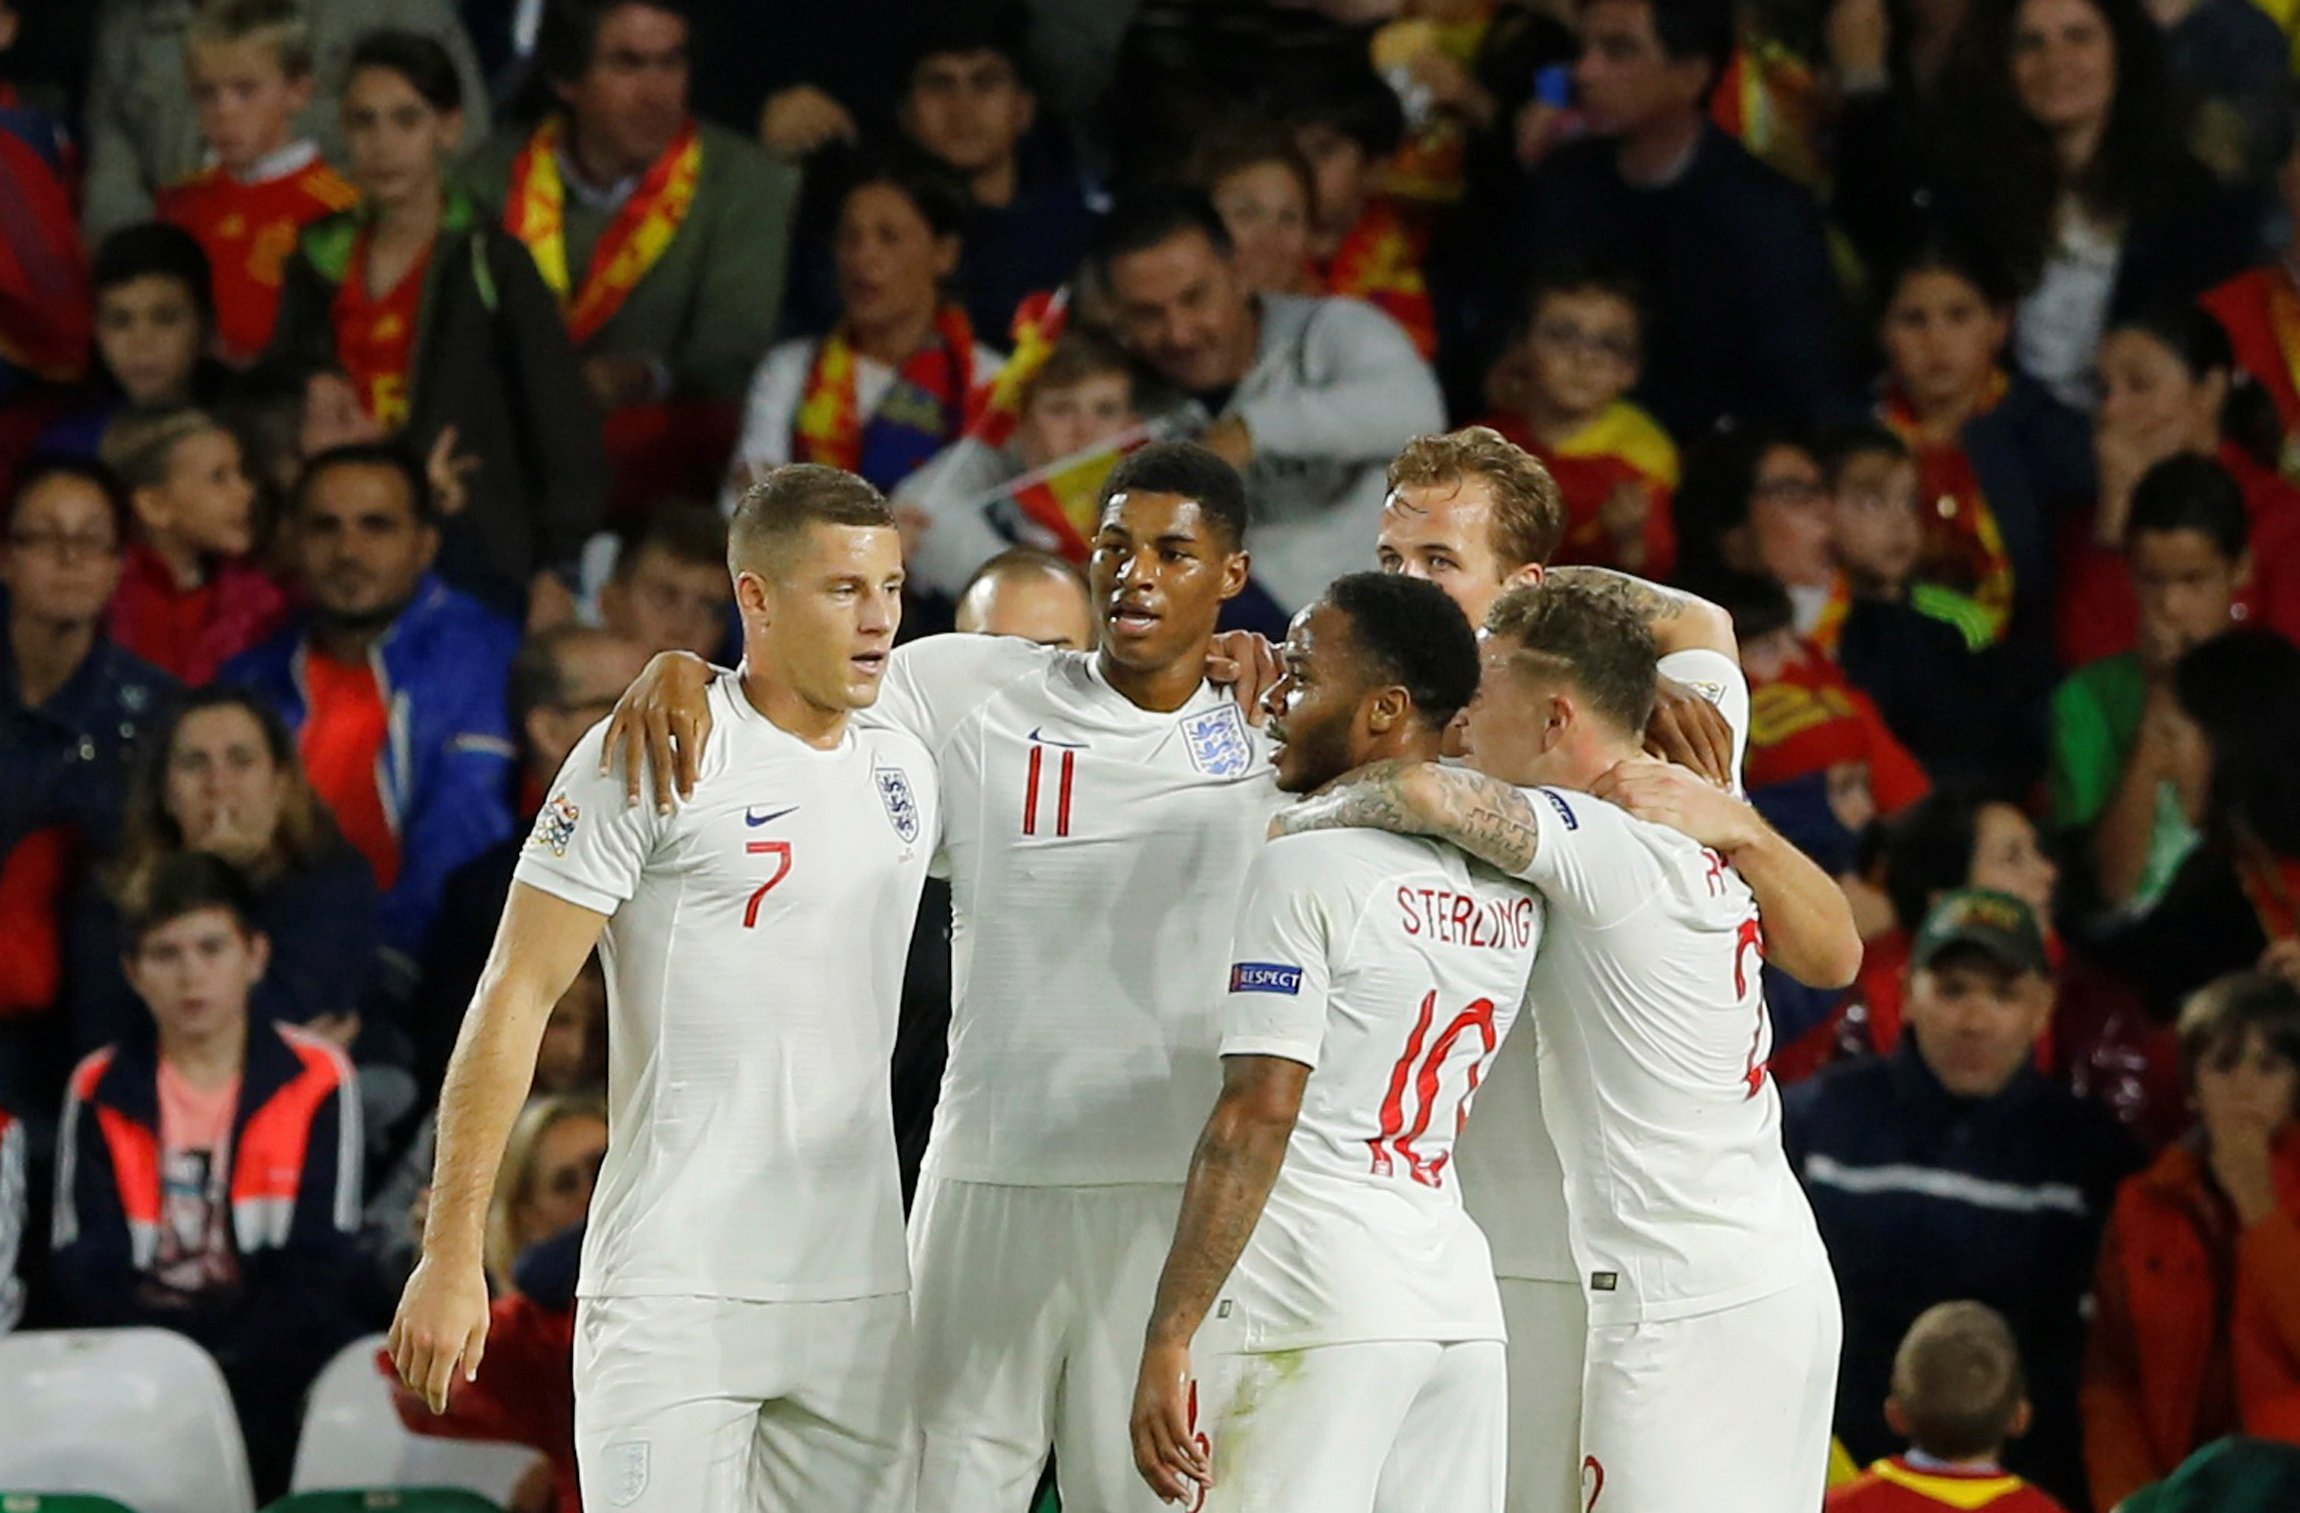 Carragher and Redknapp name the three England stars who tore Spain apart in stunning first half